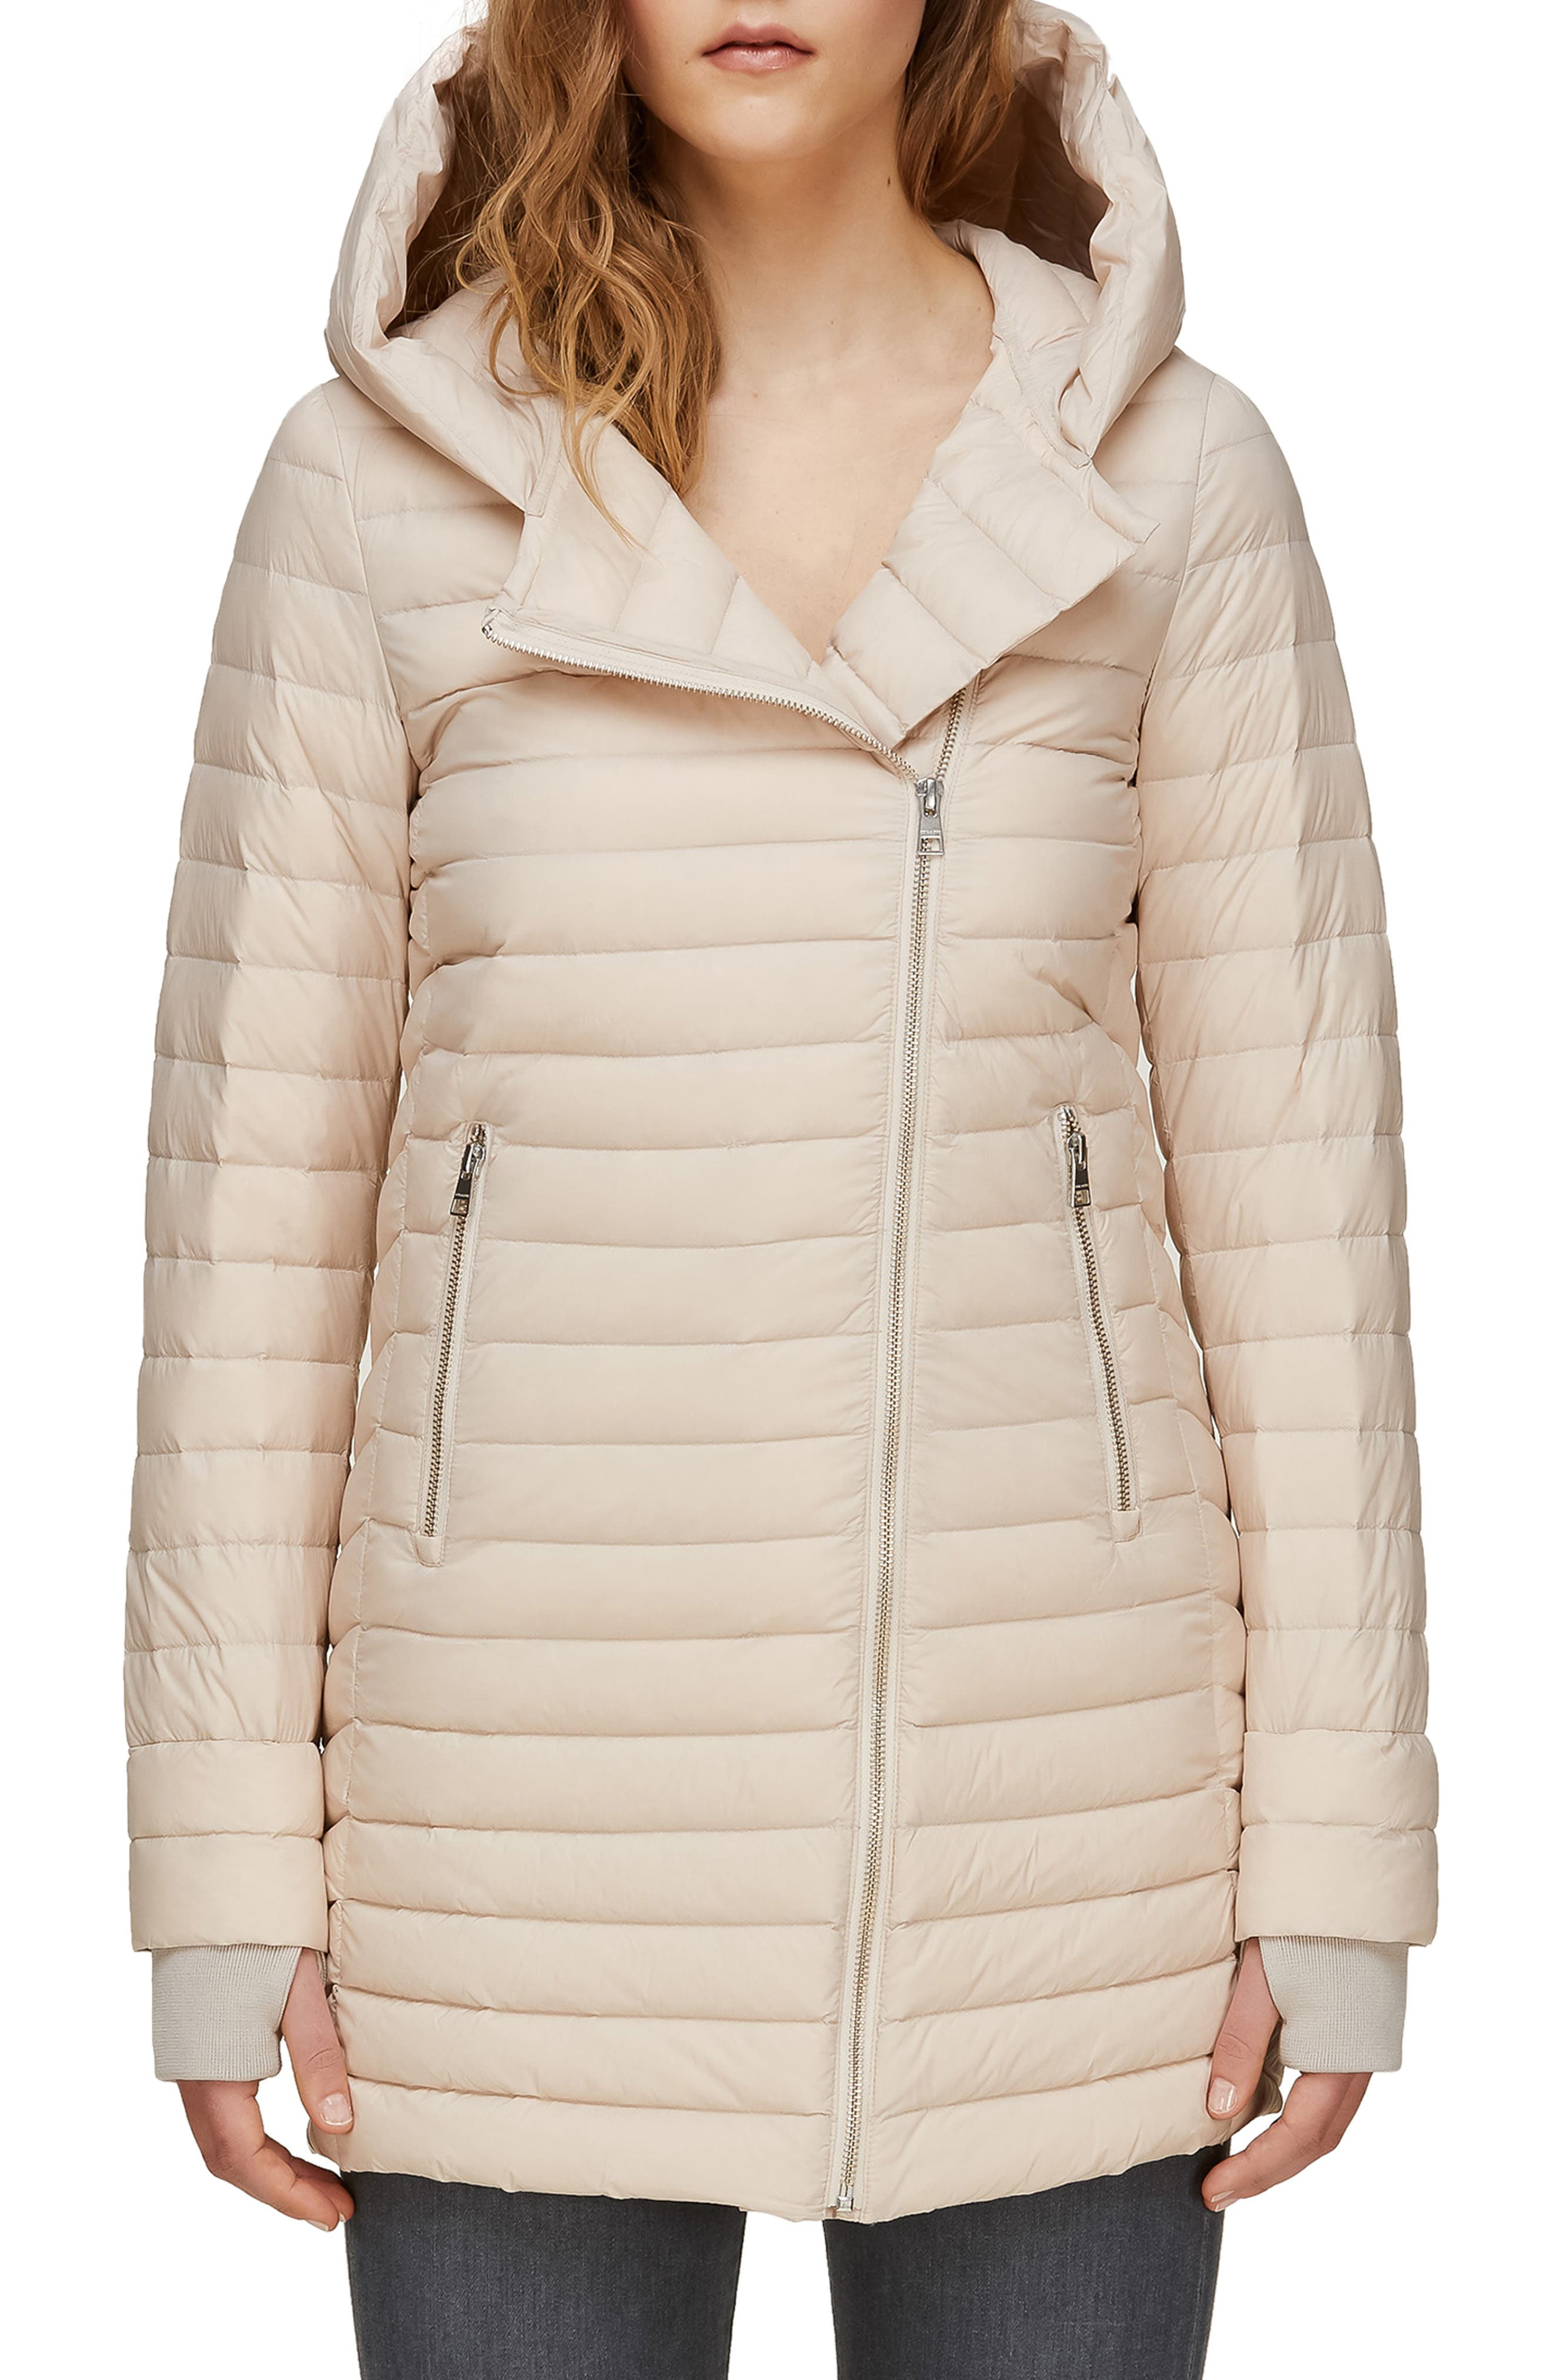 Soia & Kyo Hooded Water Repellent Lightweight Down Coat, Ivory